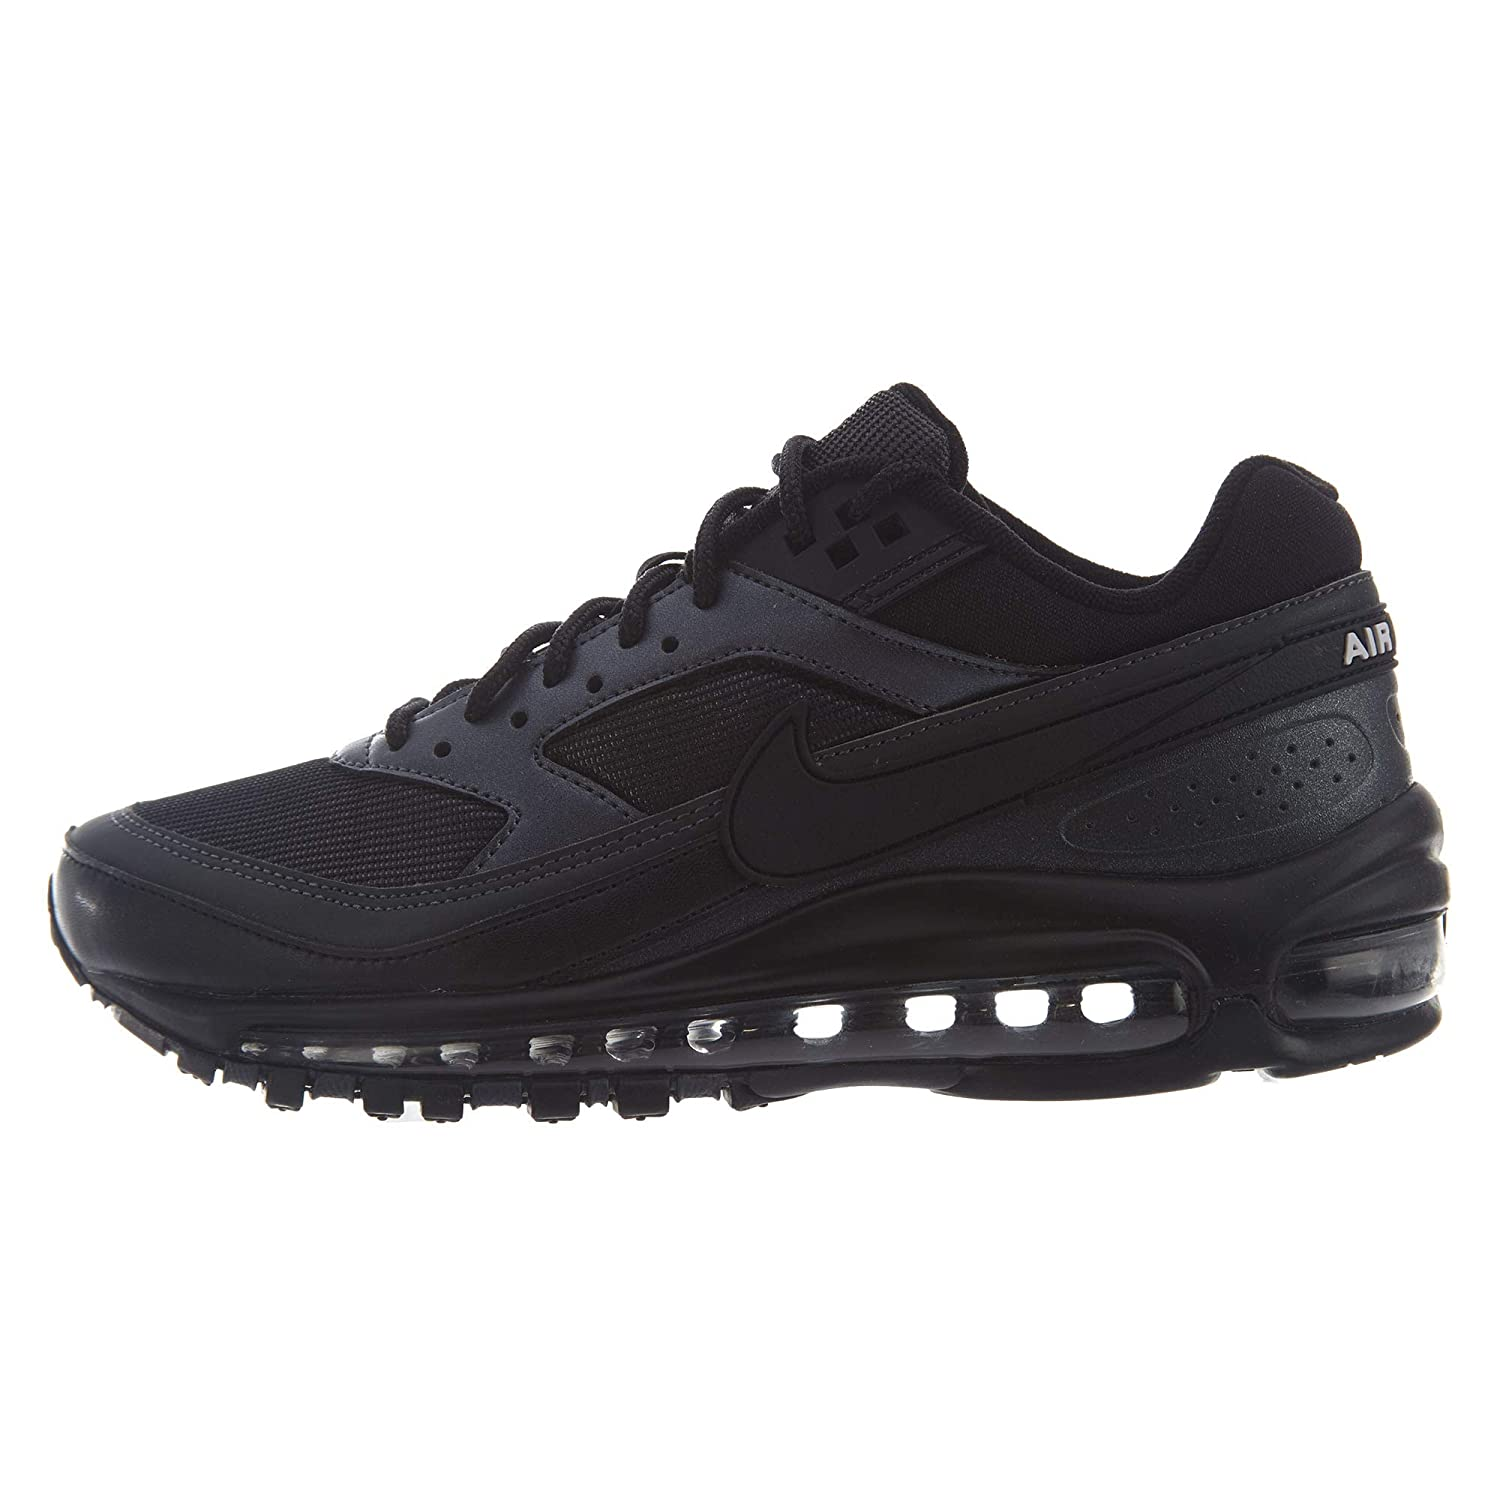 new styles 2ceae fcca2 Amazon.com   Nike Air Max 90 Mens Running Shoes   Road Running